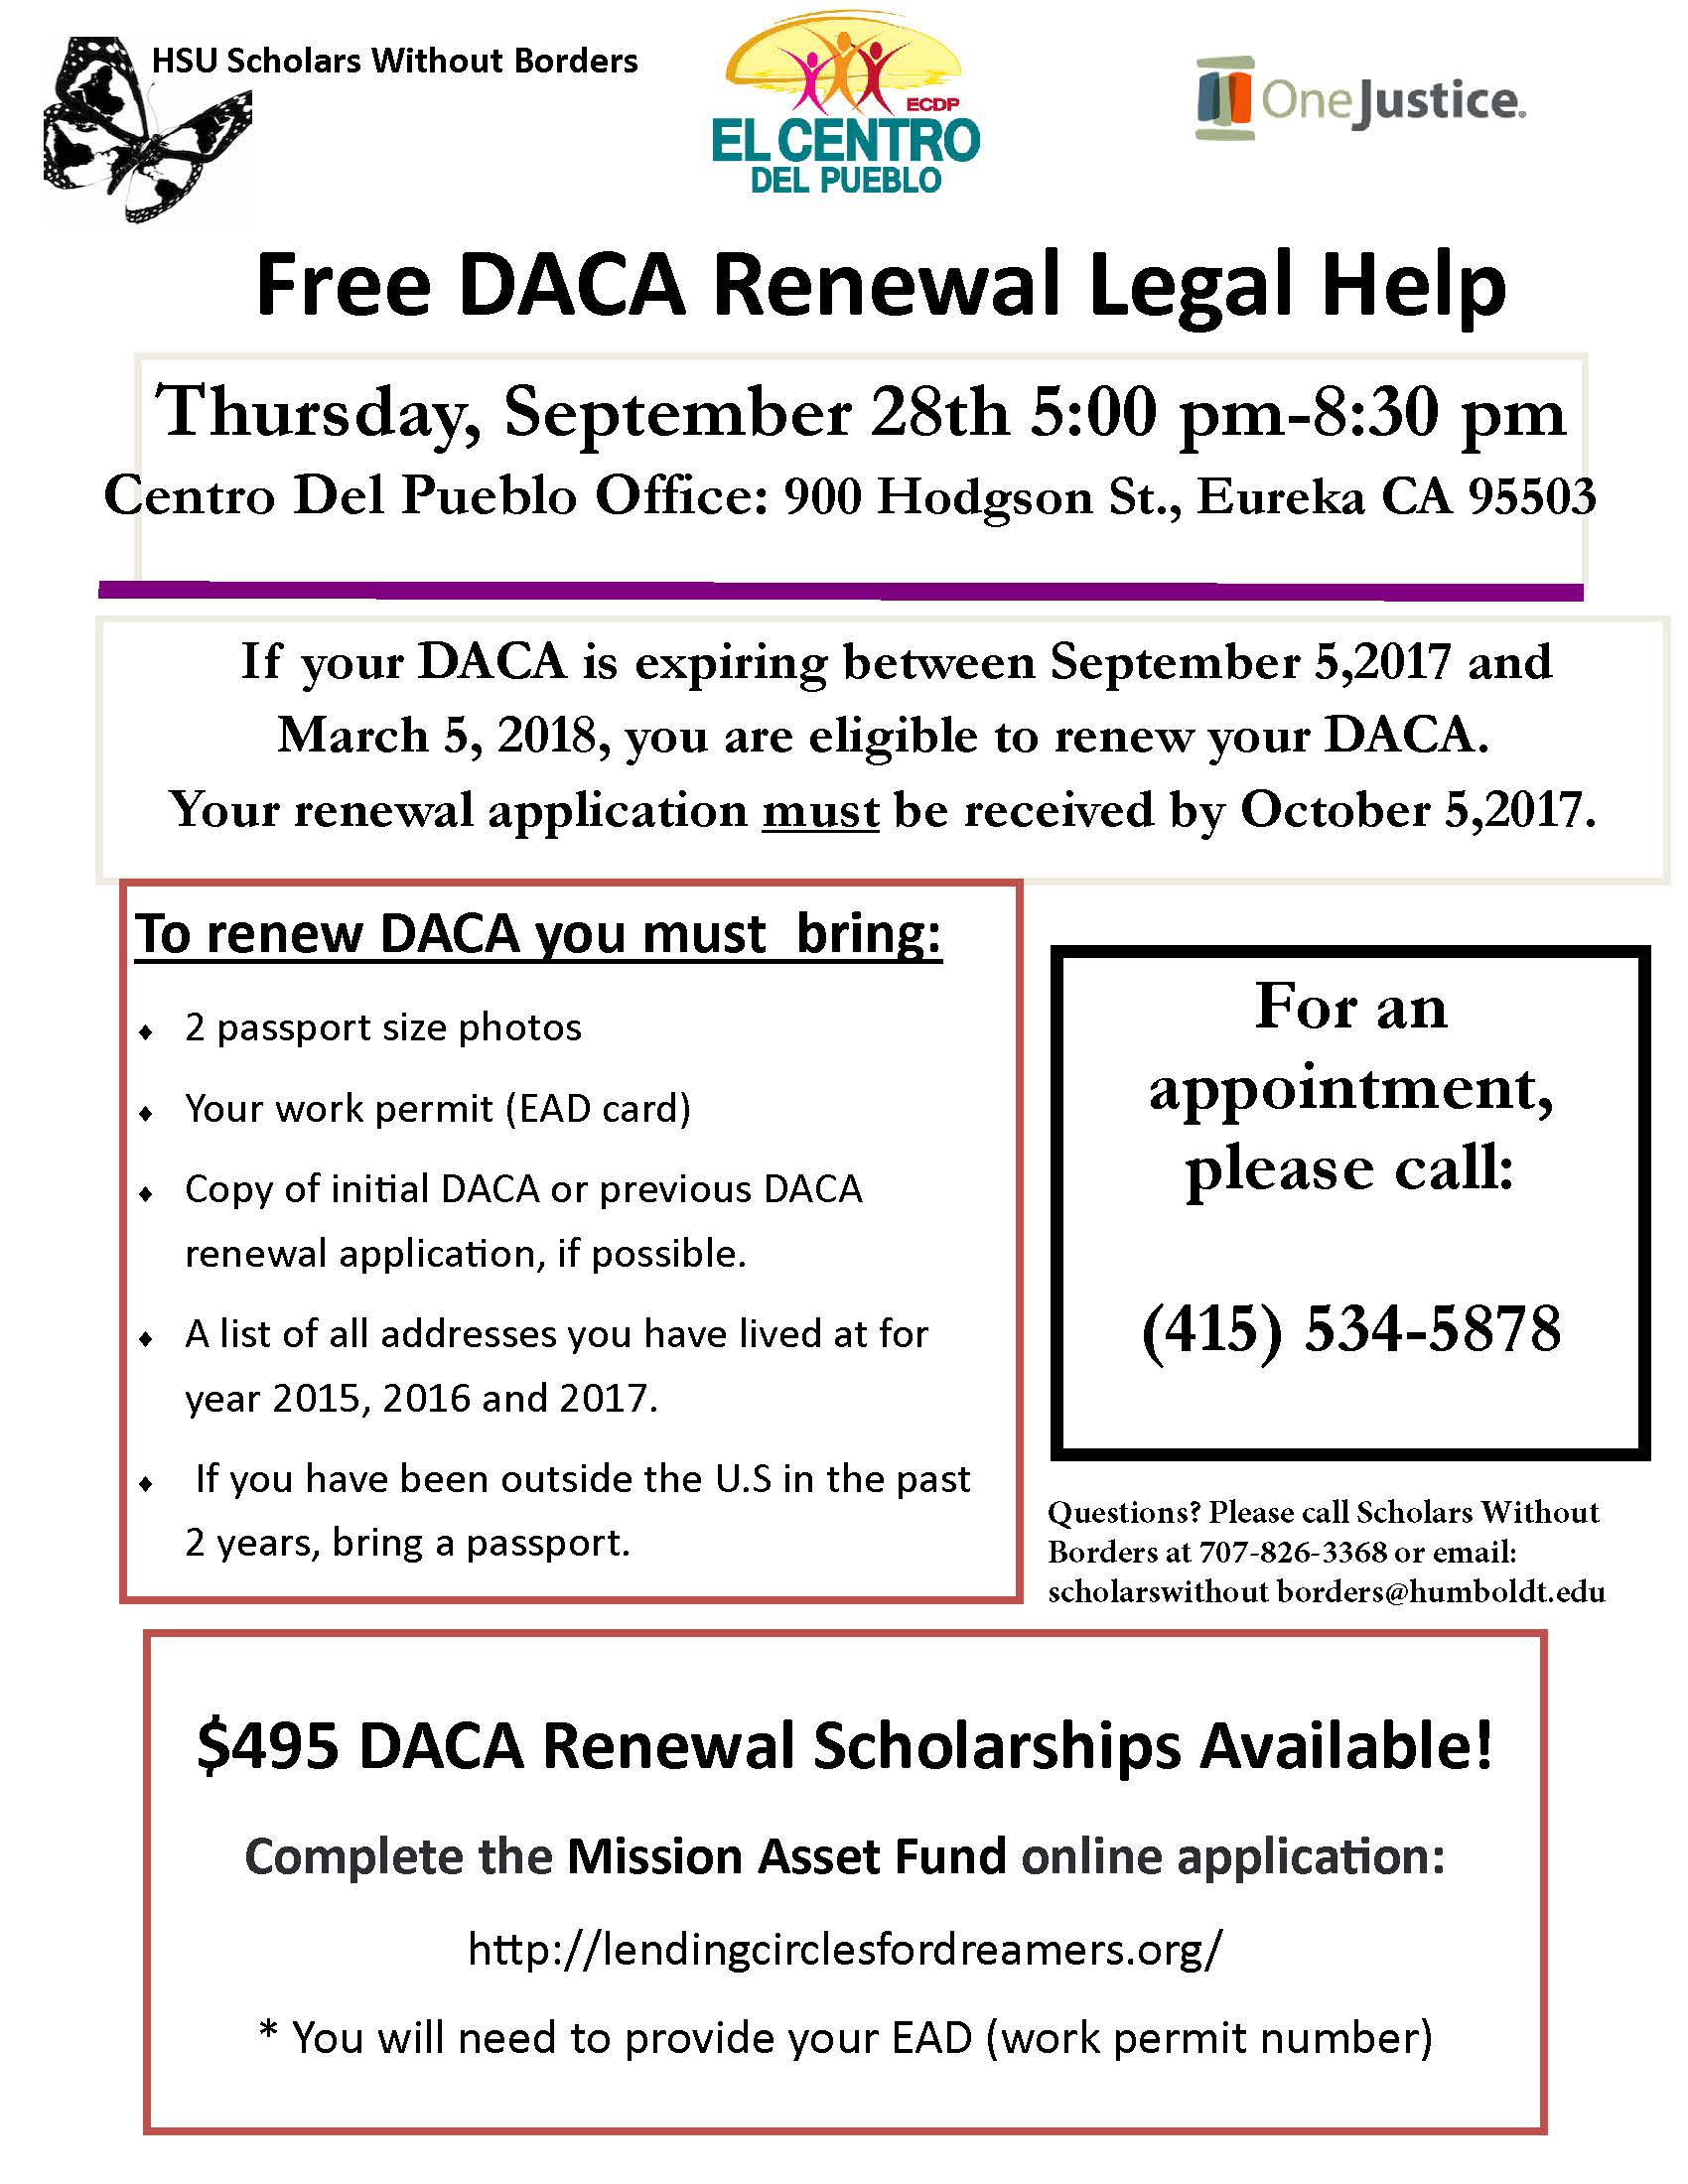 Free DACA Renewal Clinic to be Held in Eureka on September